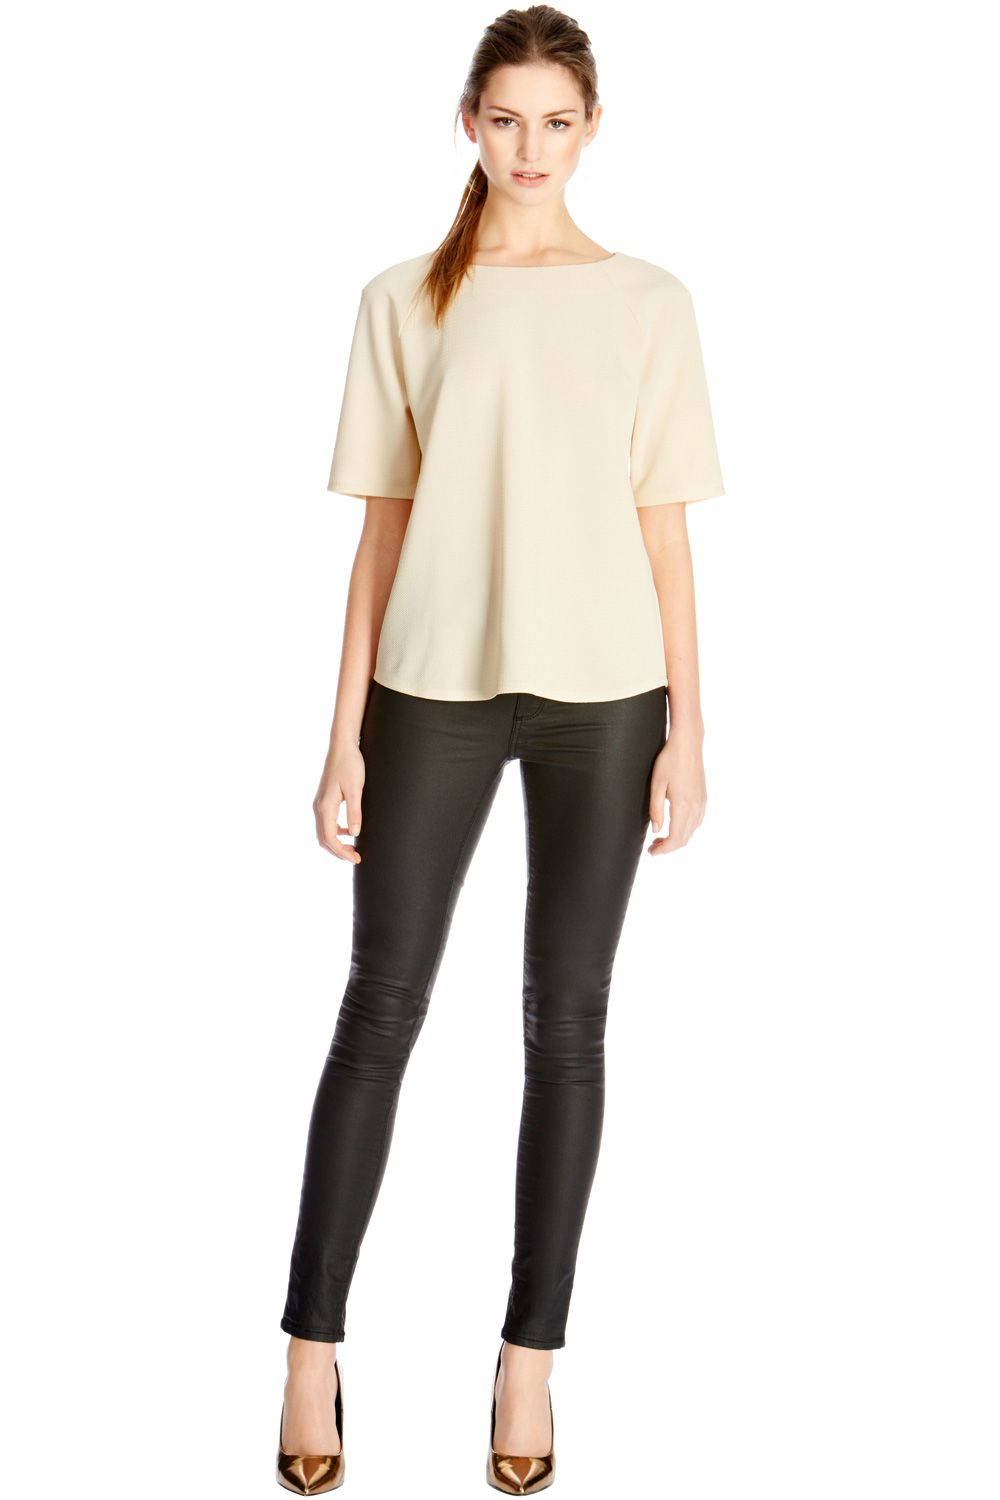 Textured crepe top